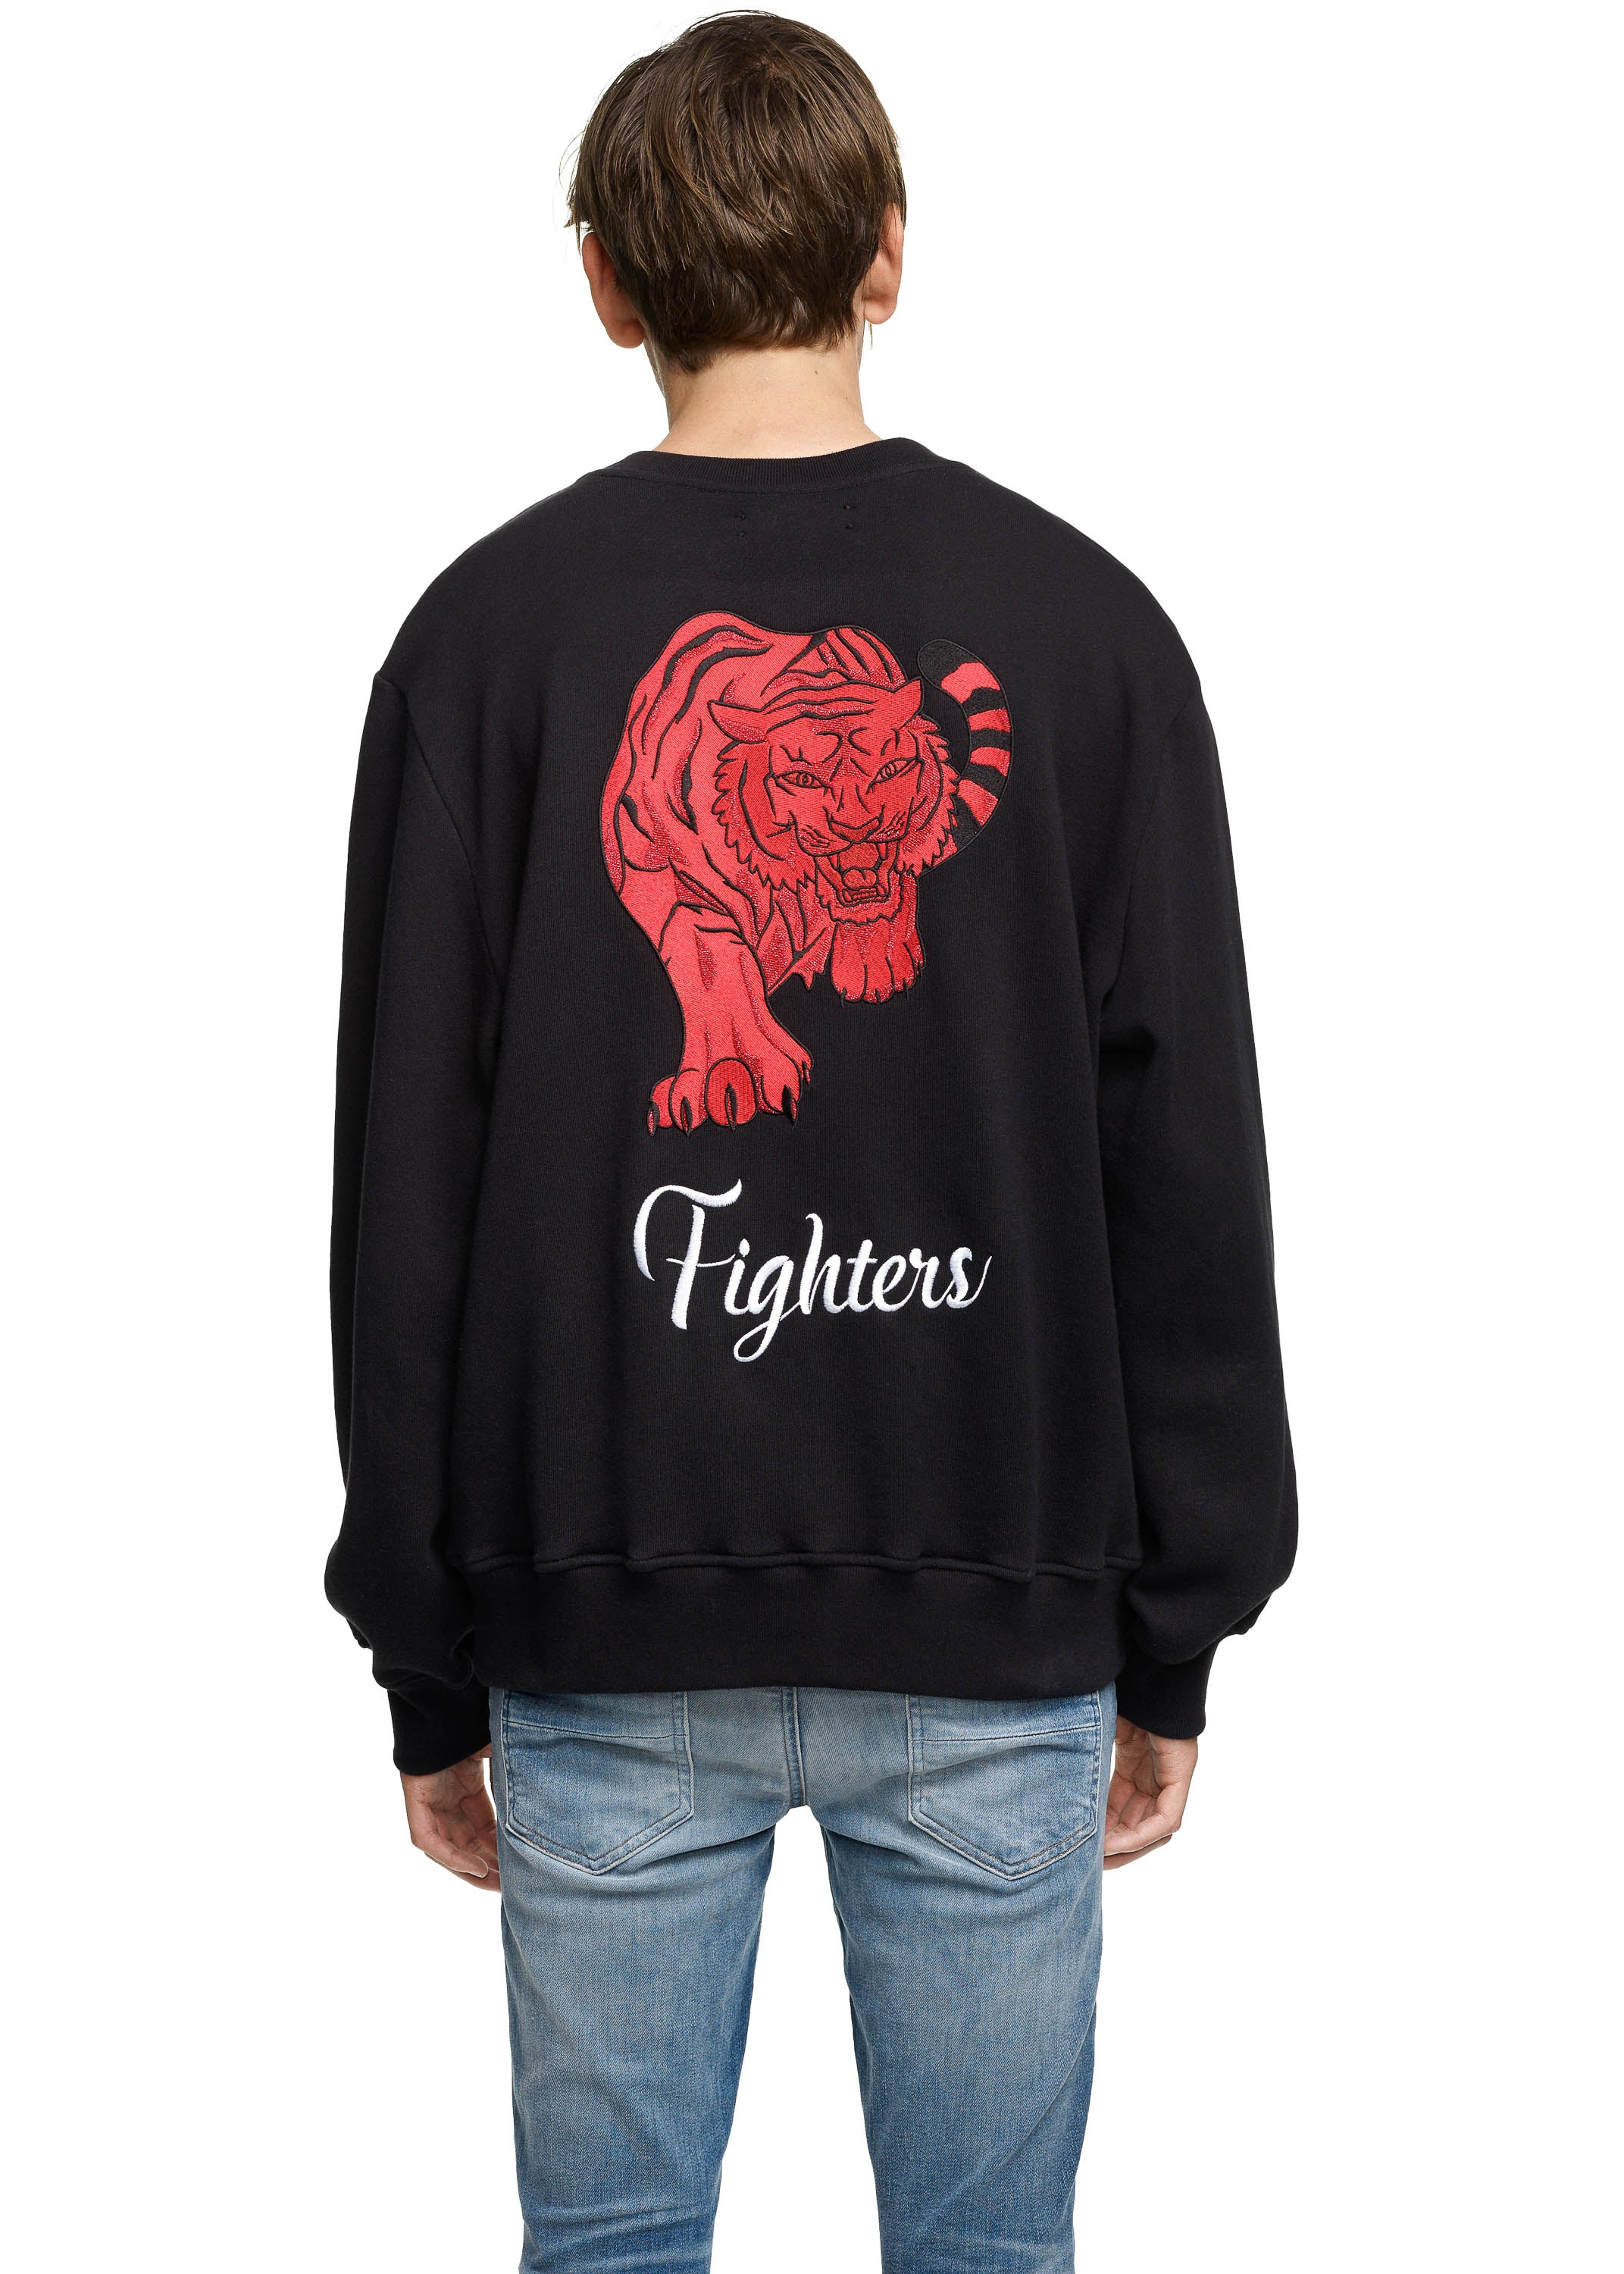 fighters-embroidered-crew-black-red-image-3